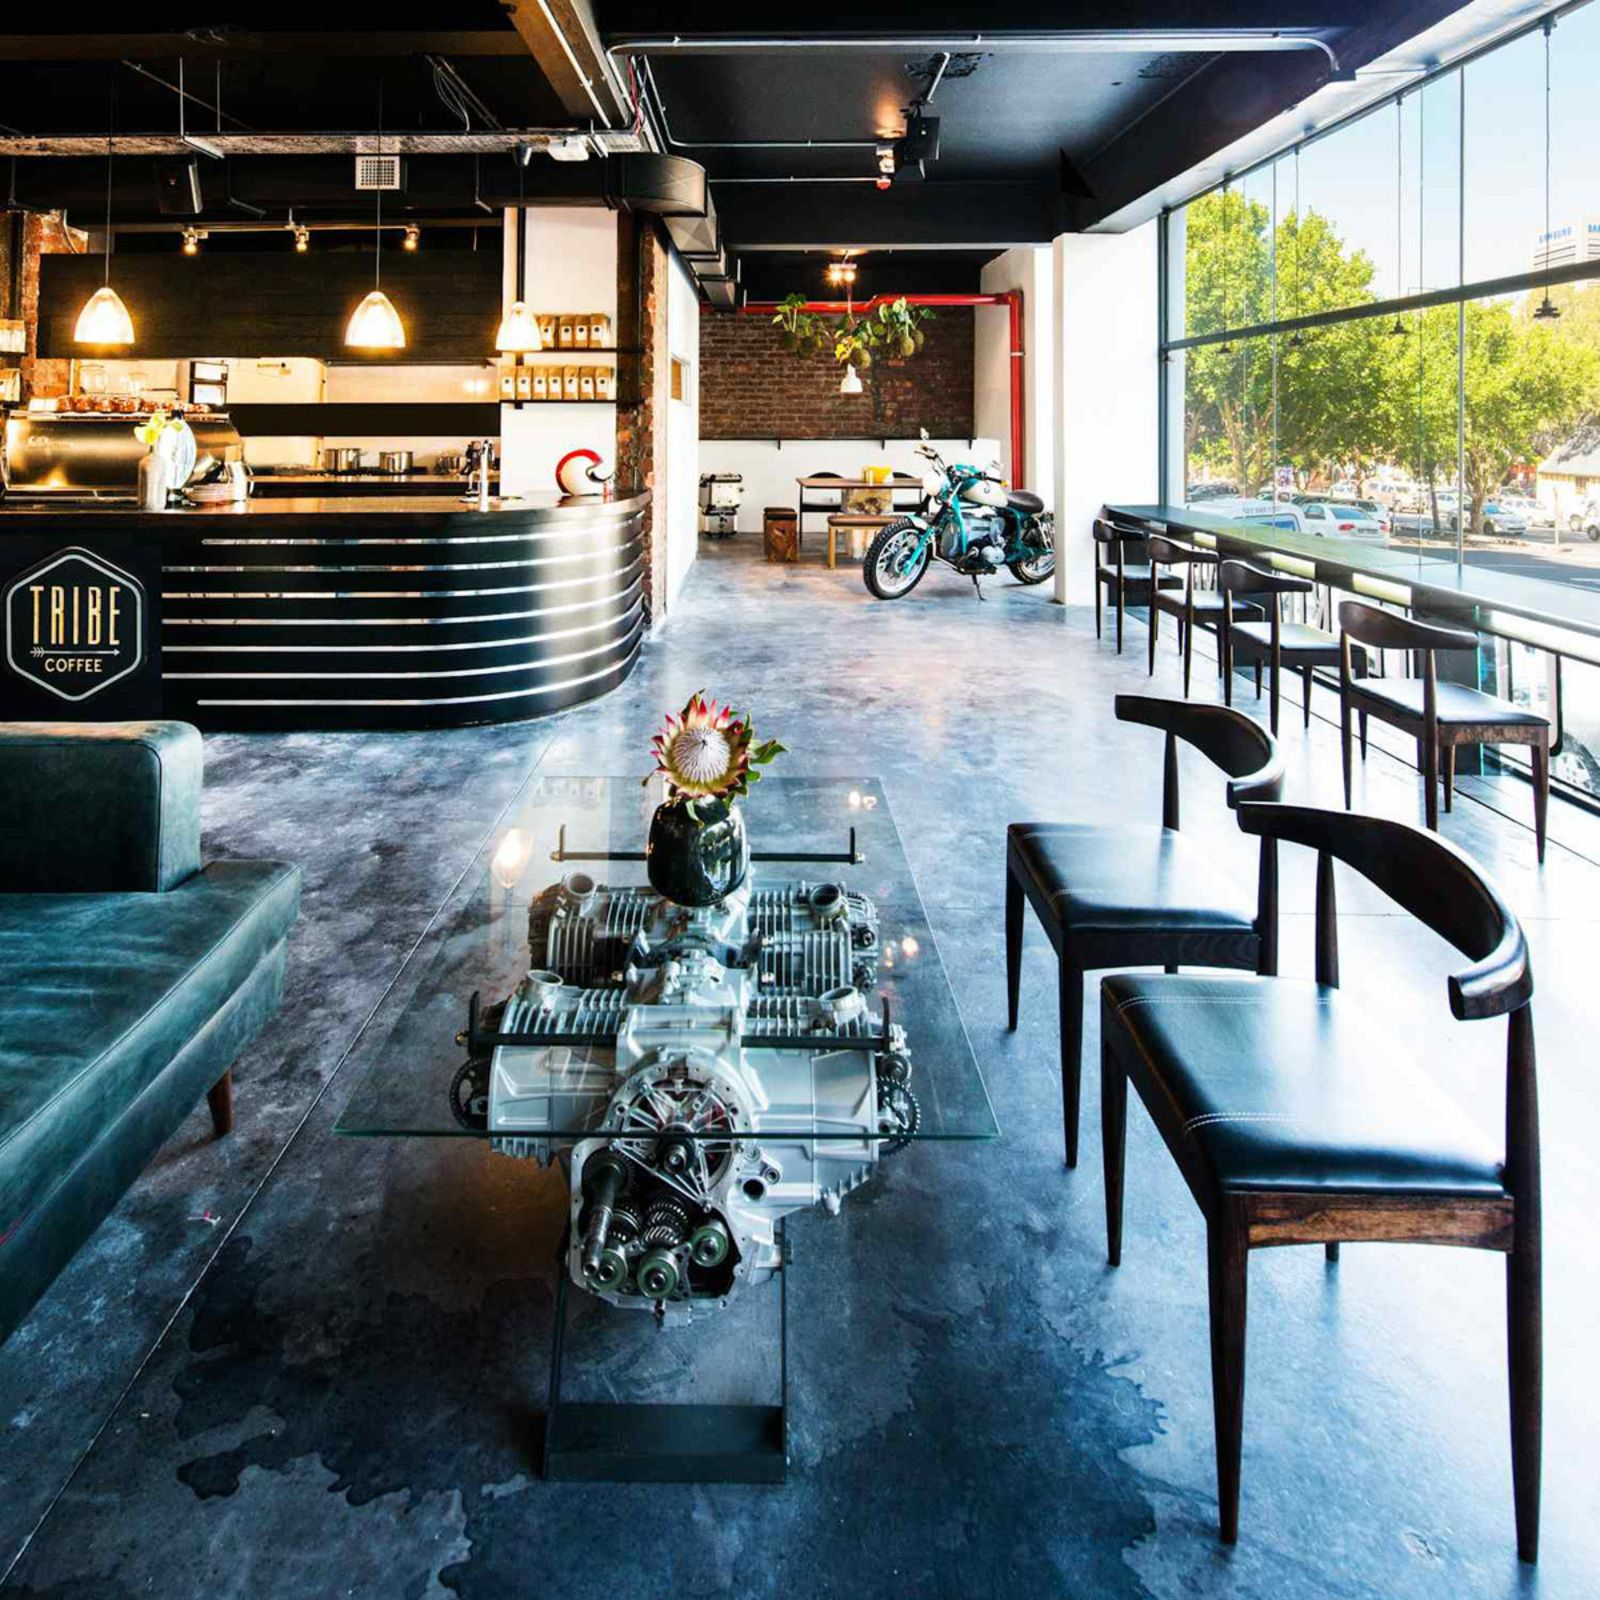 Tribe Coffee Bmw Motorrad South Africa Cafe Interior Design Bmw Motorrad Cafe Design